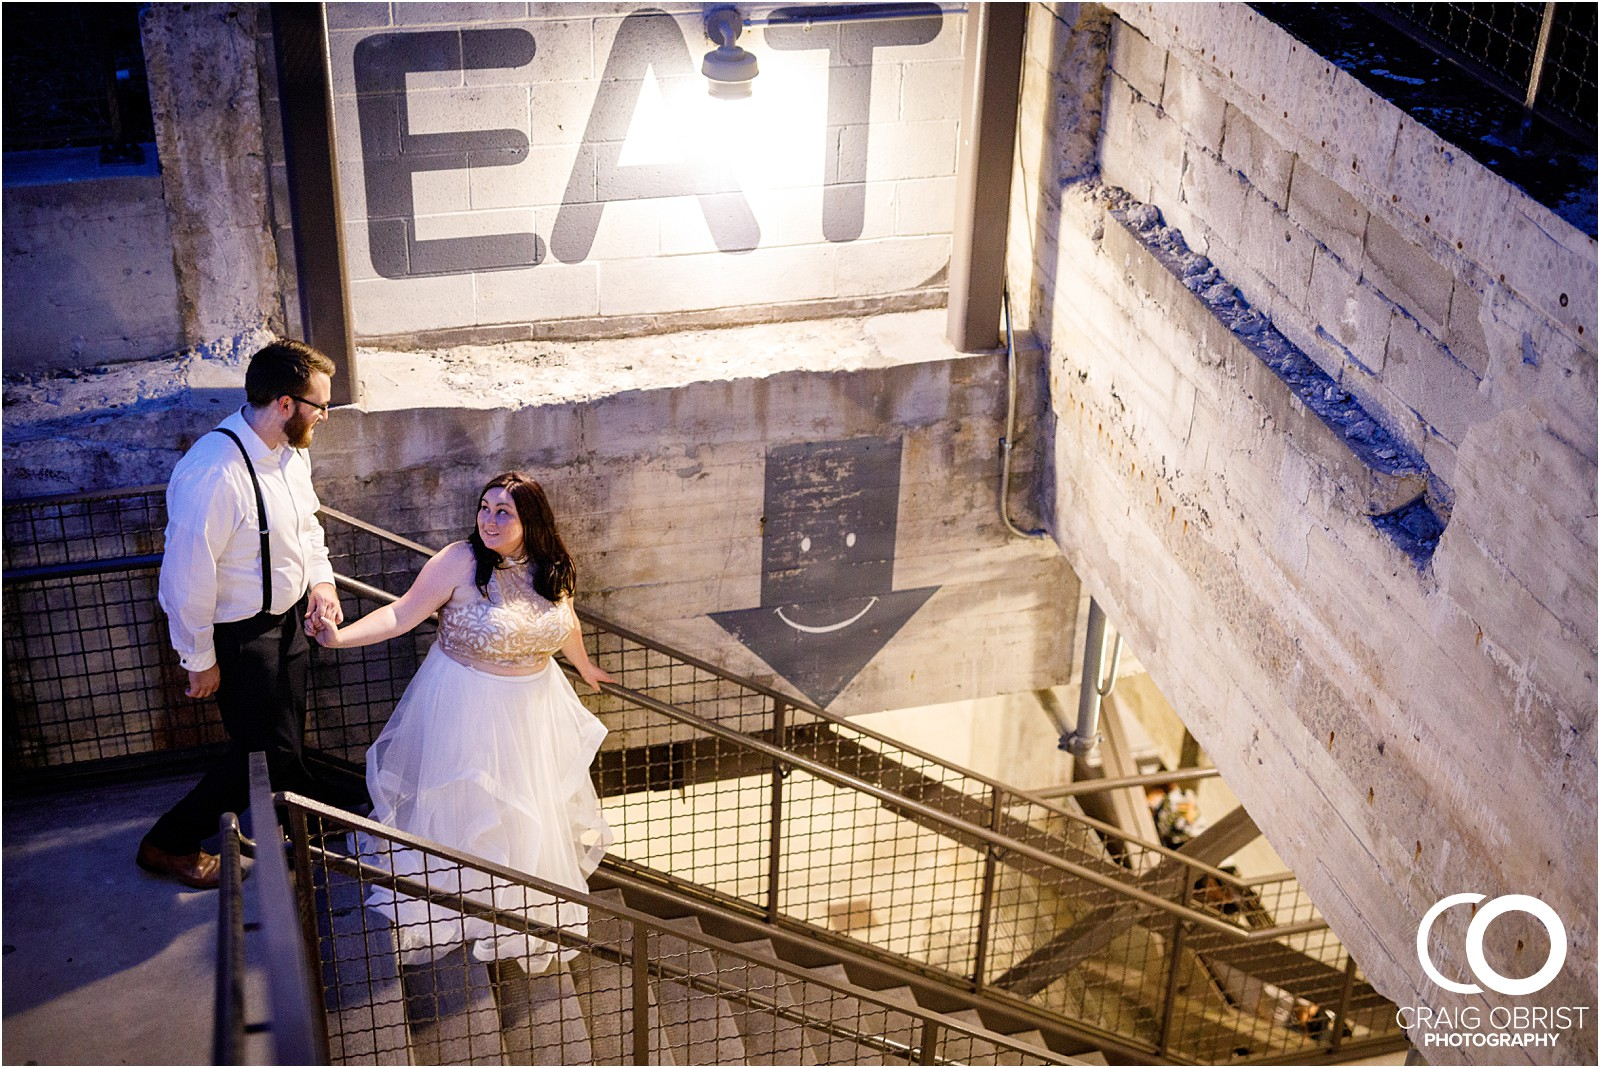 Ponce city markey Atlanta Beltline Piedmont Park engagement portraits_0027.jpg